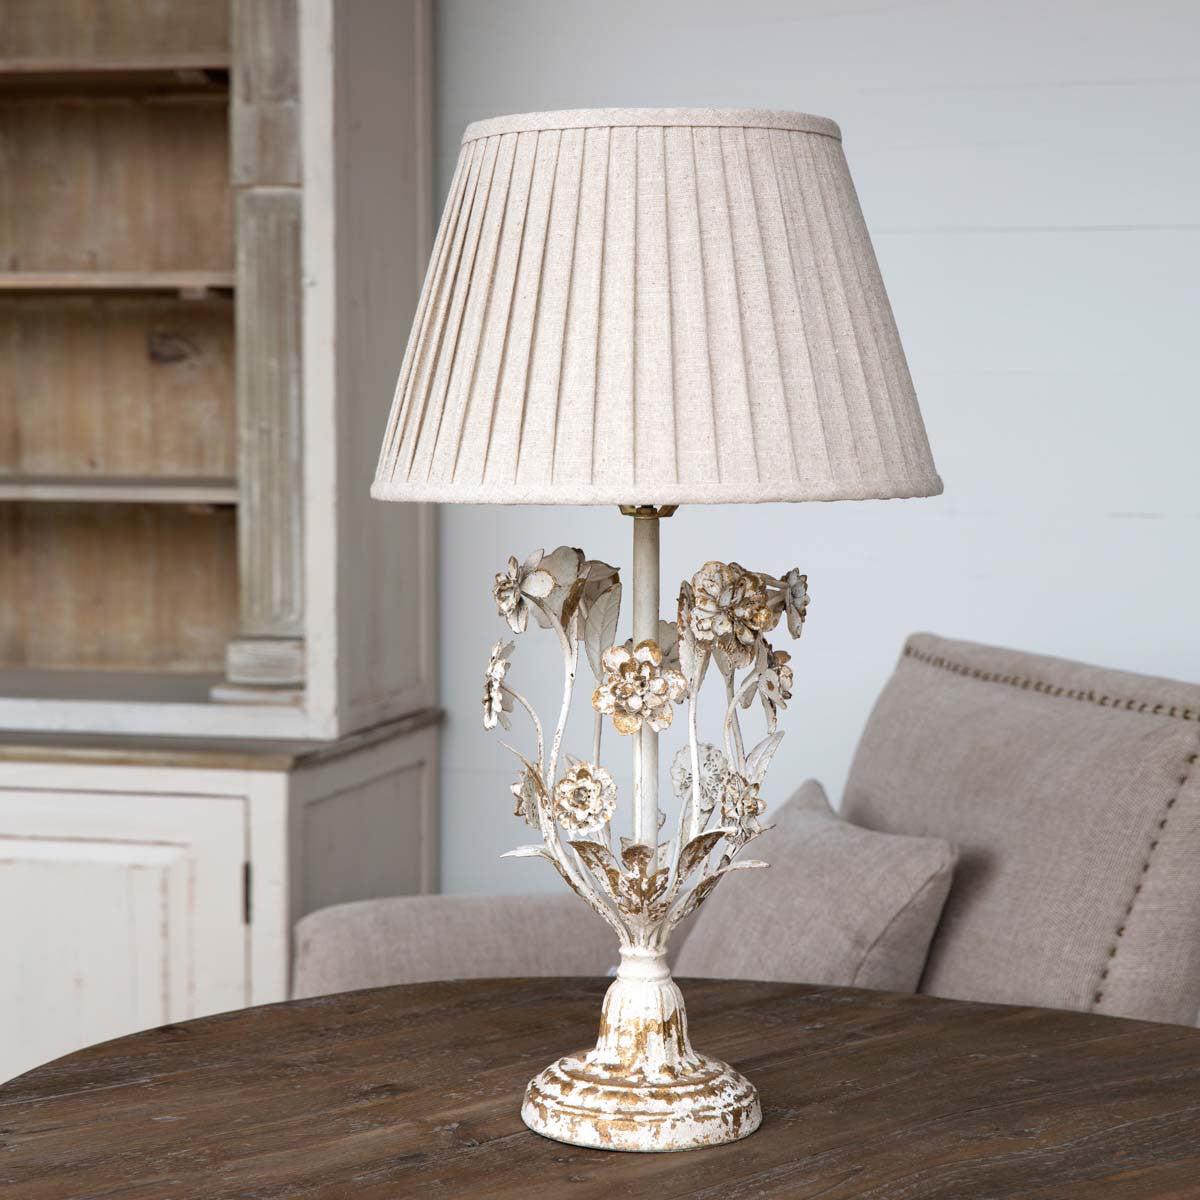 Farmhouse Flower Lamp